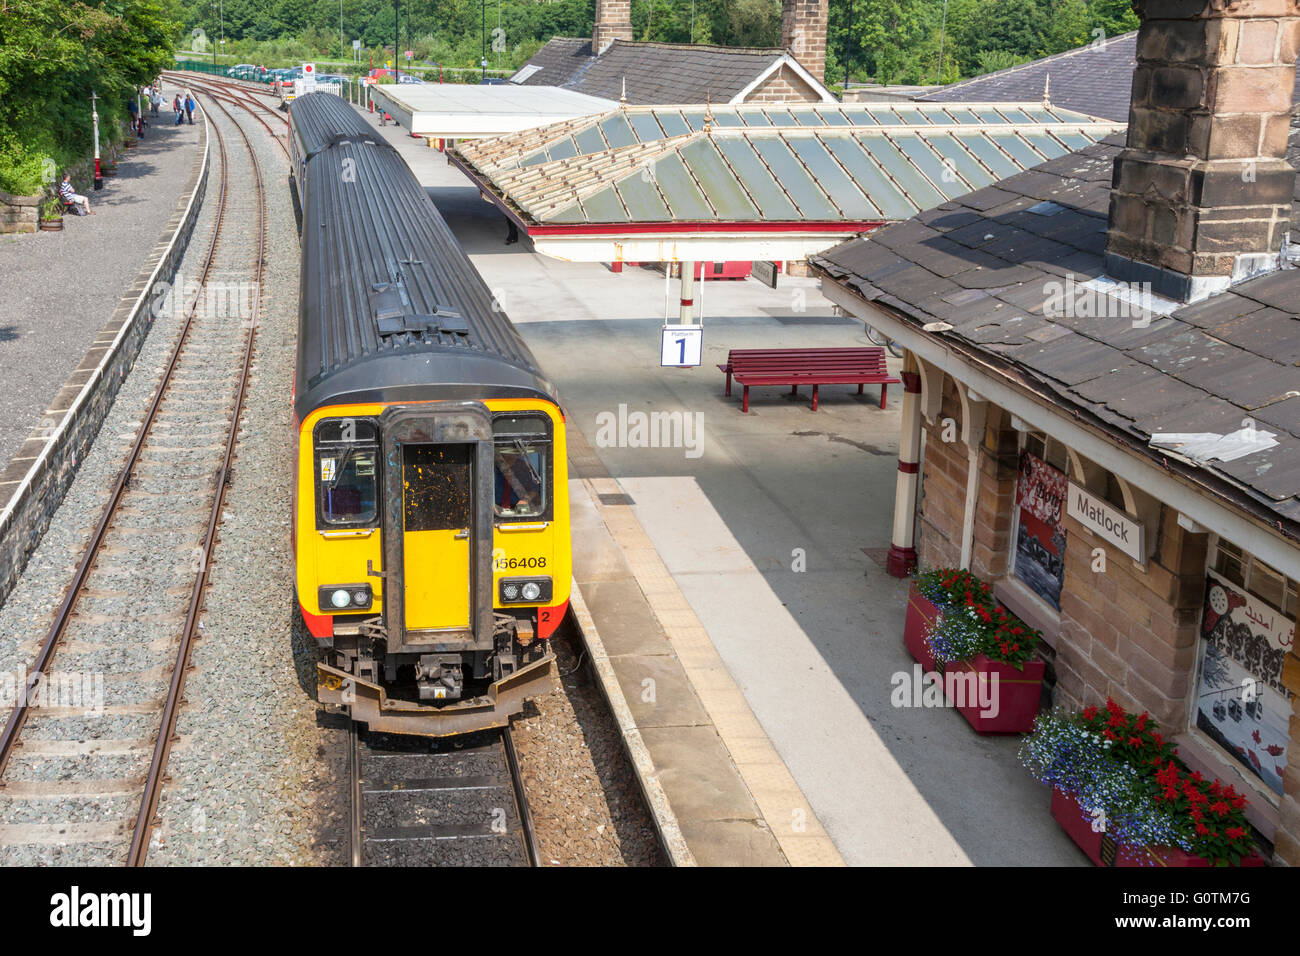 East Midlands Trains DMU (diesel multiple unit) train ready to depart from Matlock Railway Station, Derbyshire, - Stock Image